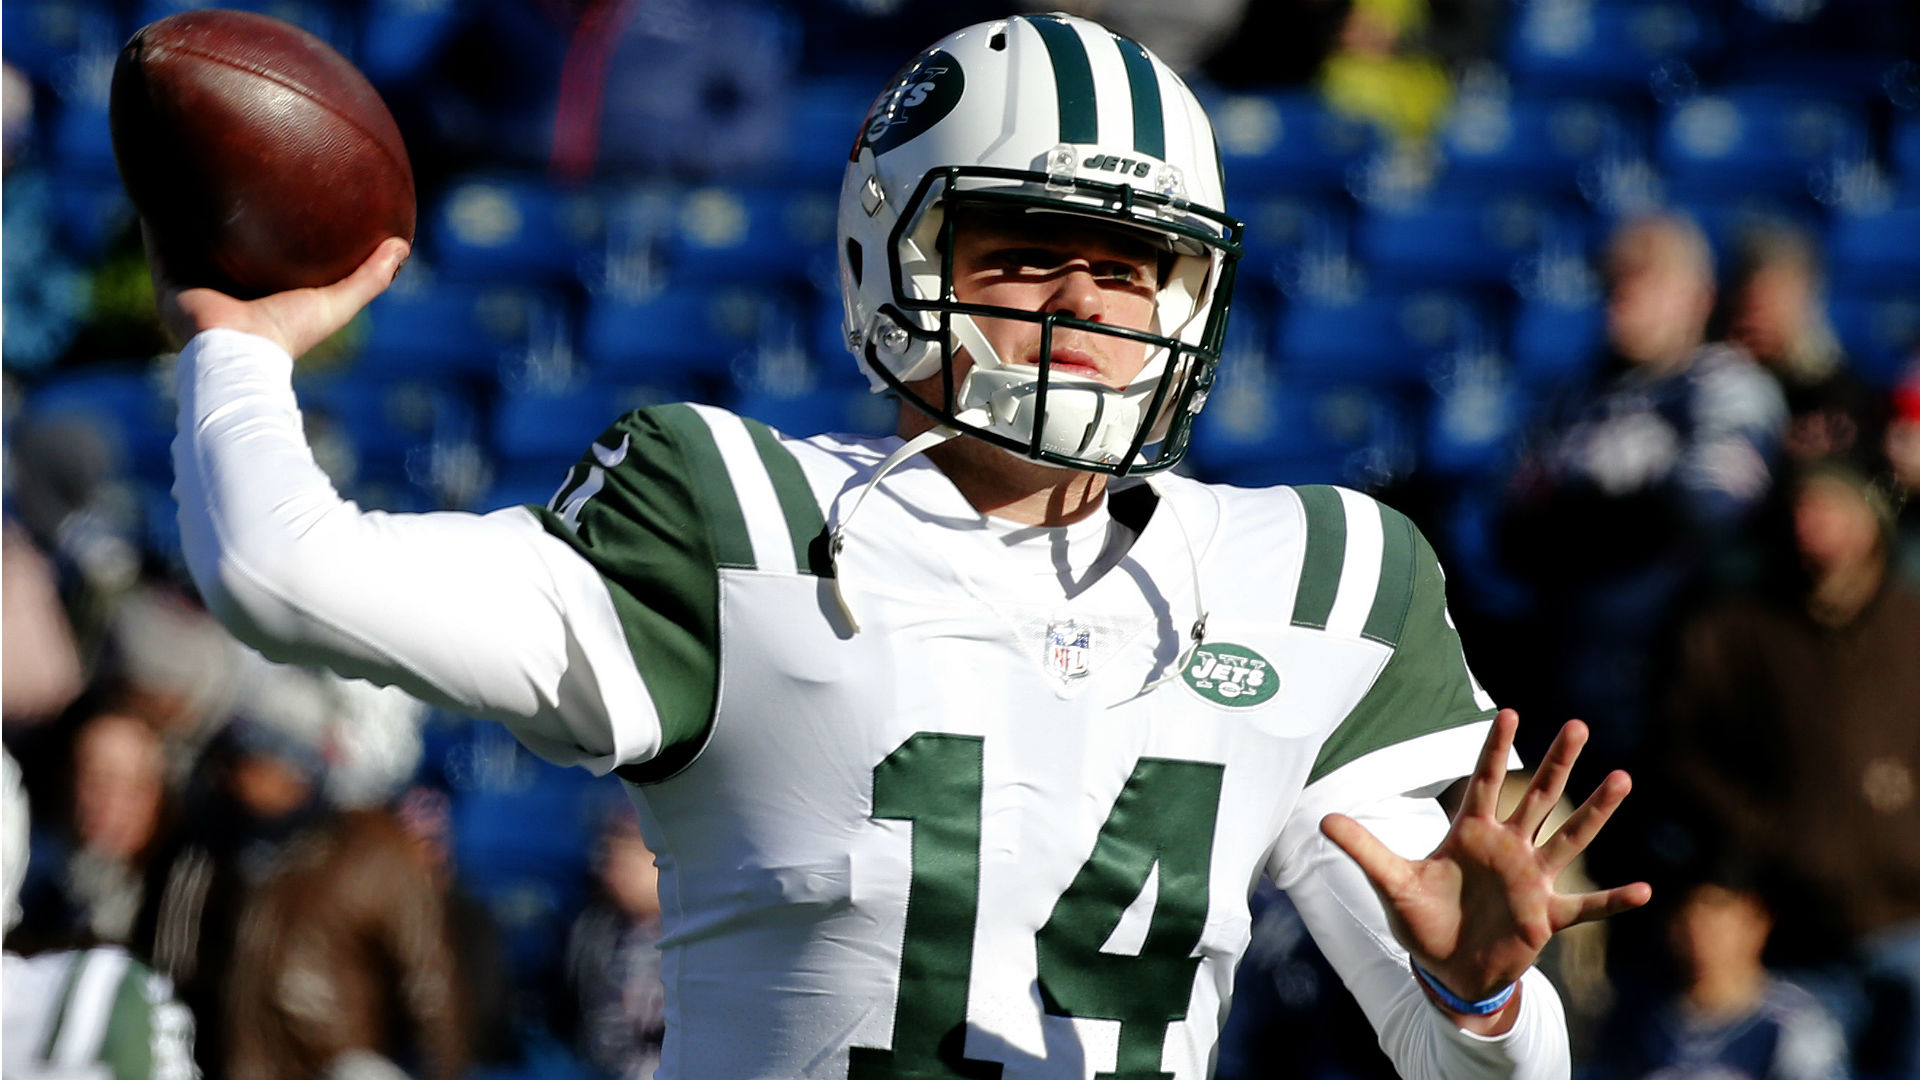 Jets' Sam Darnold 'really pumped about' playing with Le'Veon Bell